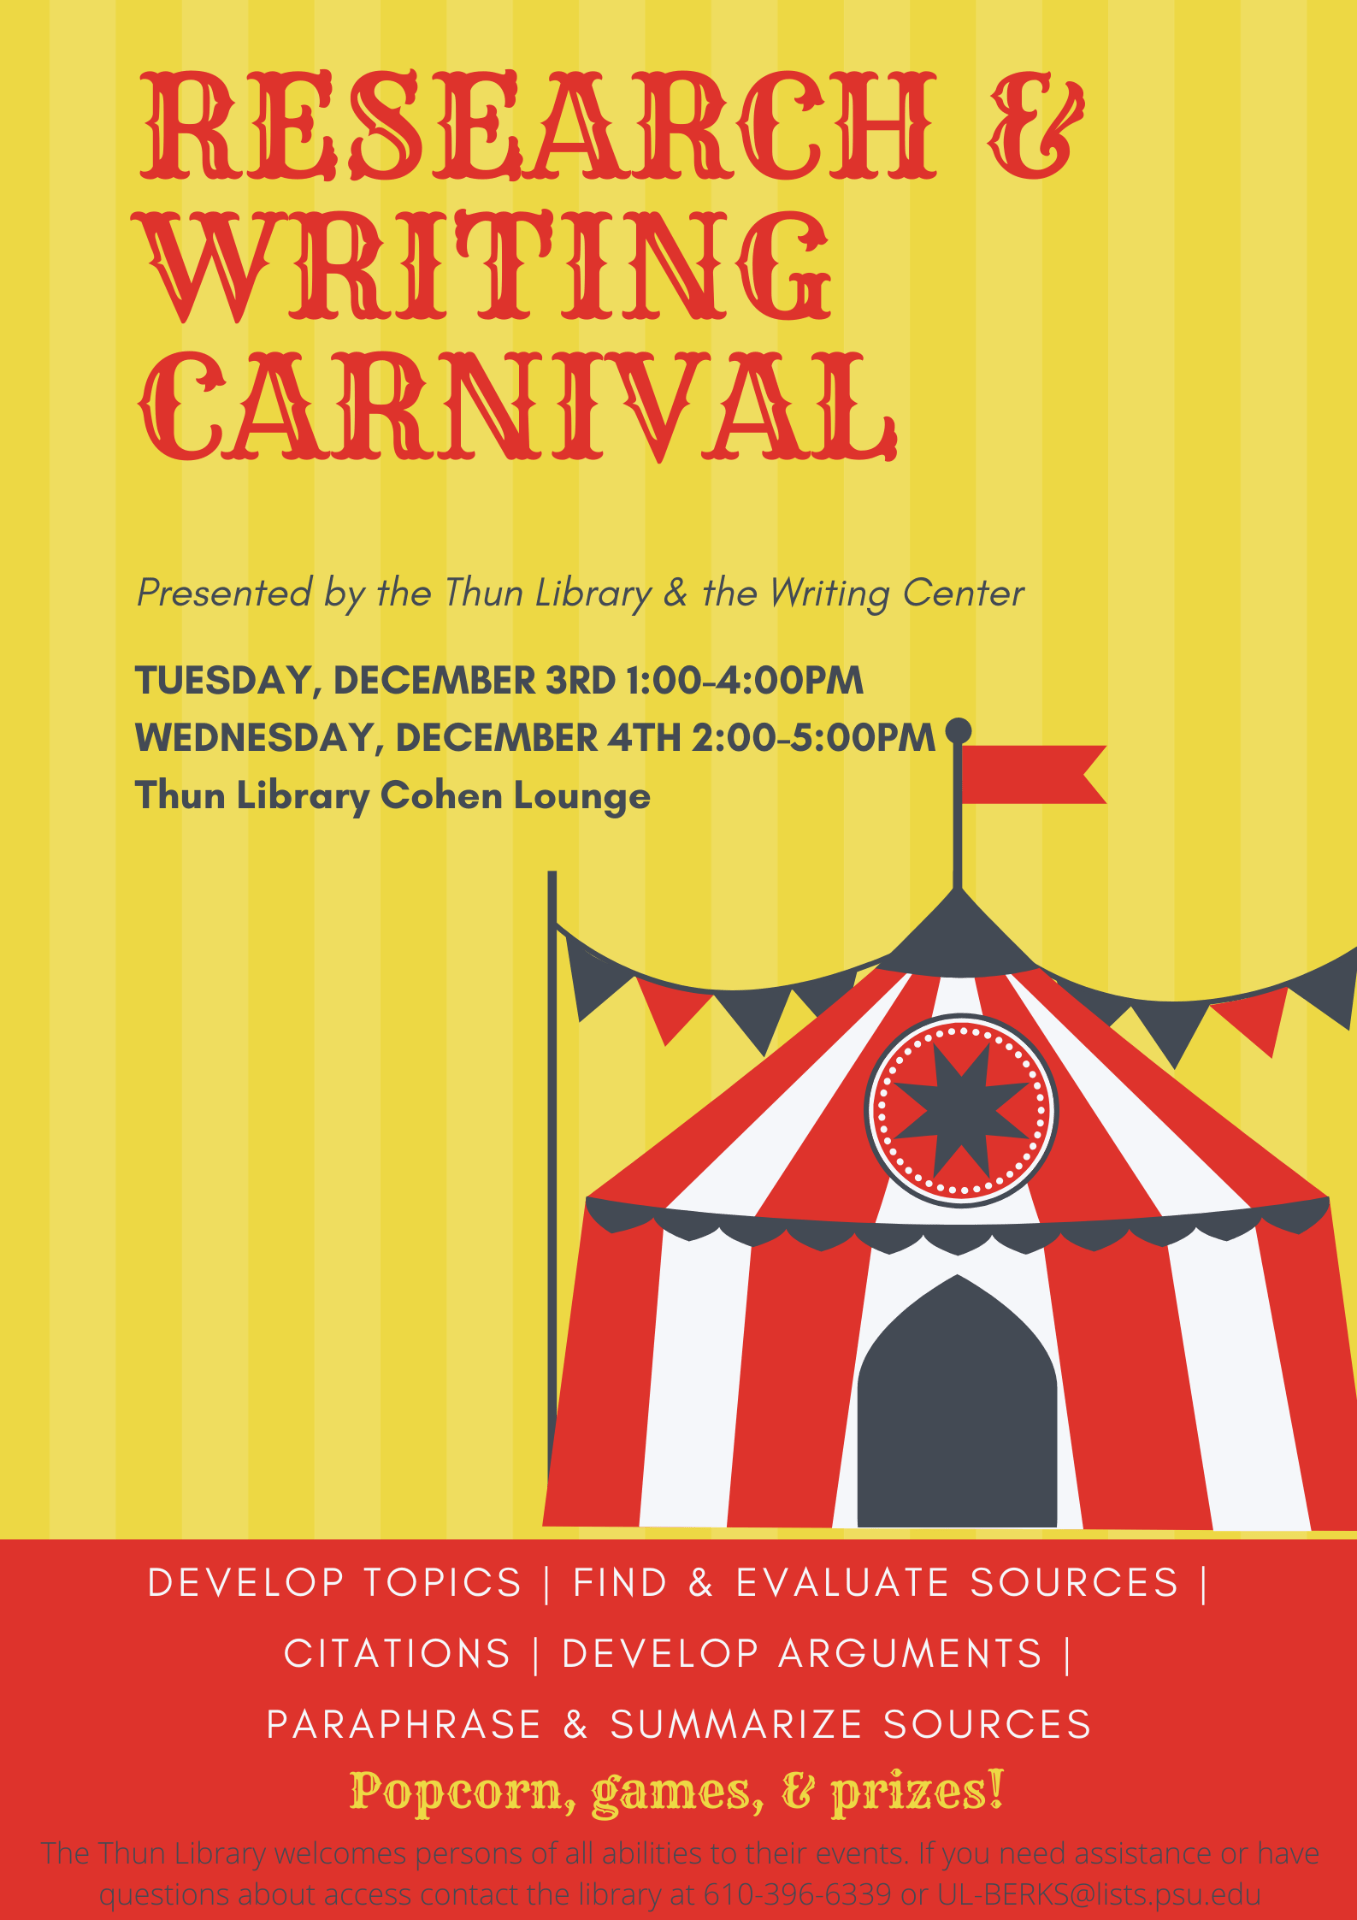 Research & Writing Carnival Fall 2019 flyer